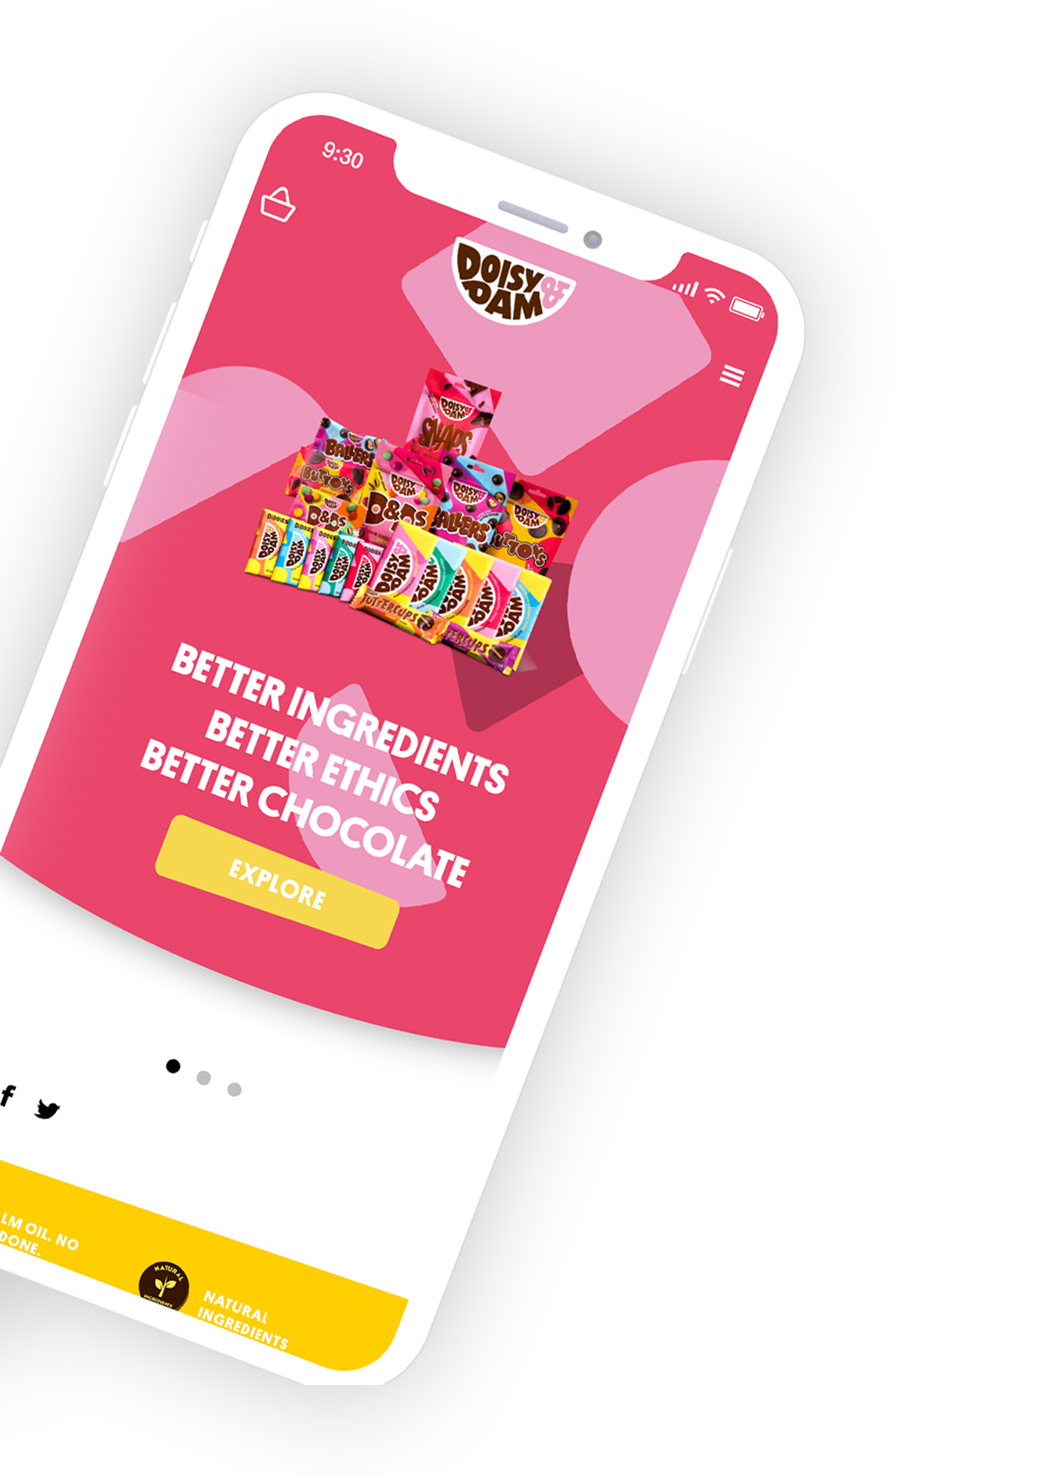 doisy and dam mobile shopify web design